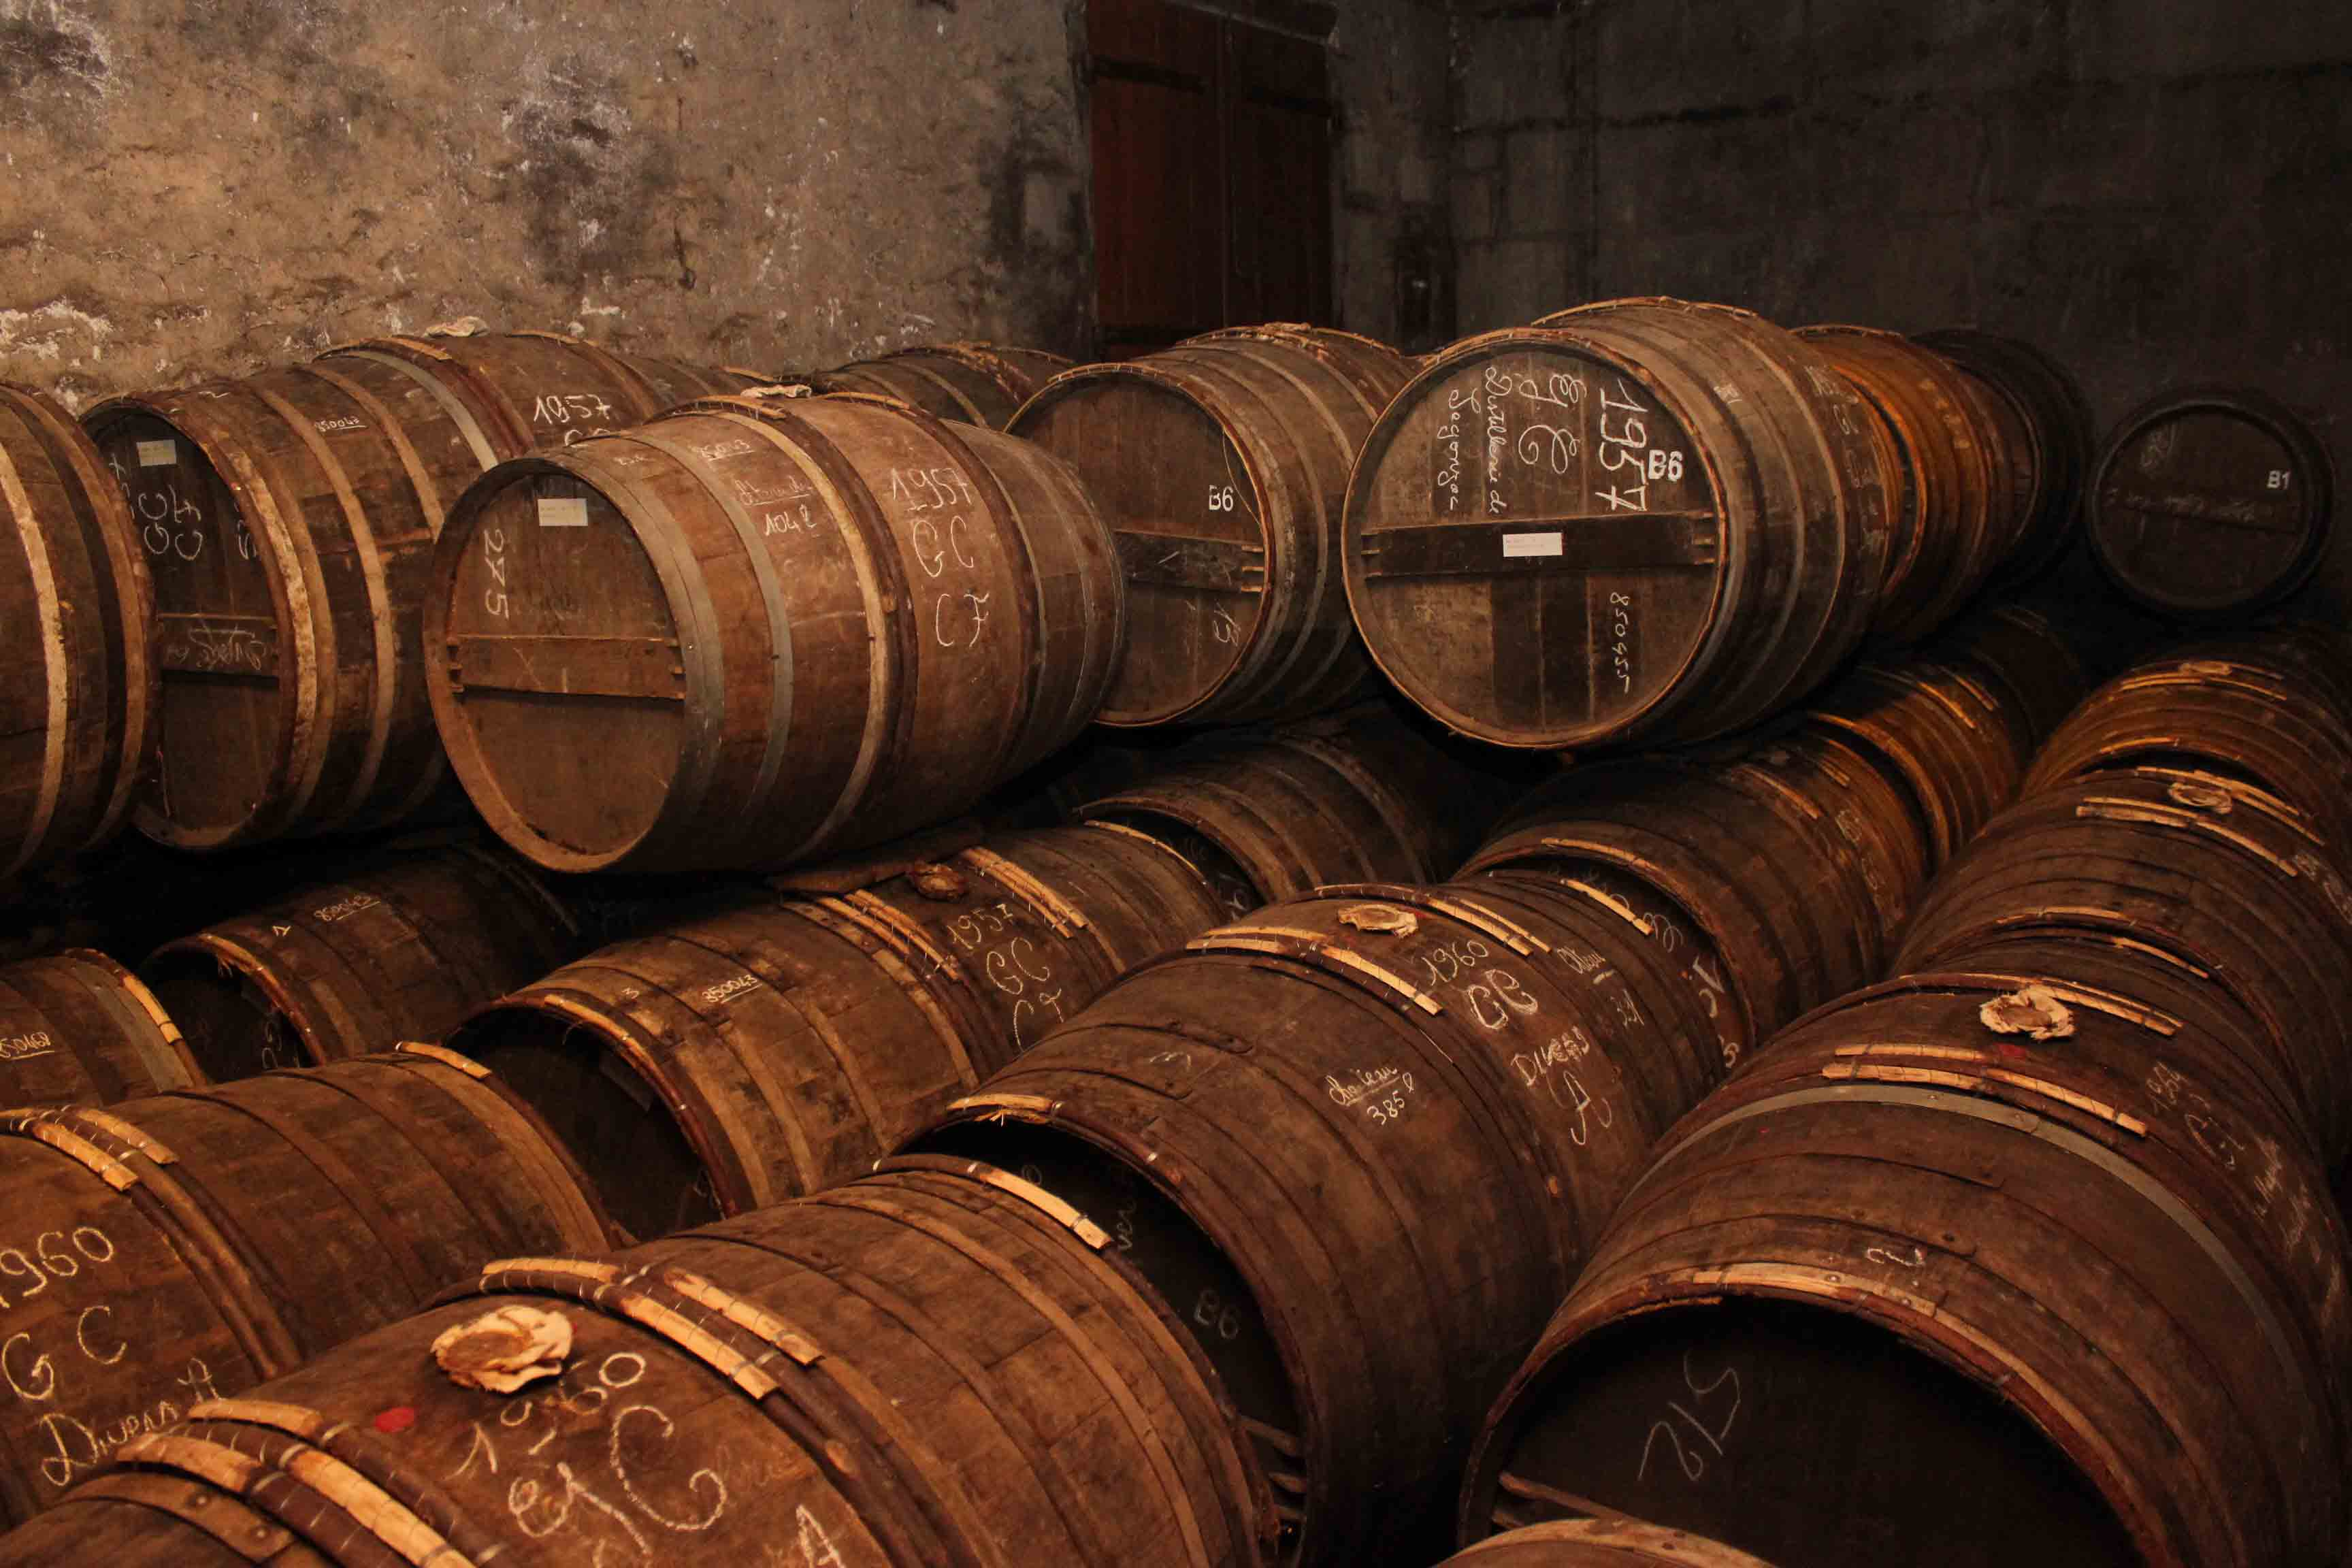 Top 10 Things To Do in the Cognac Region